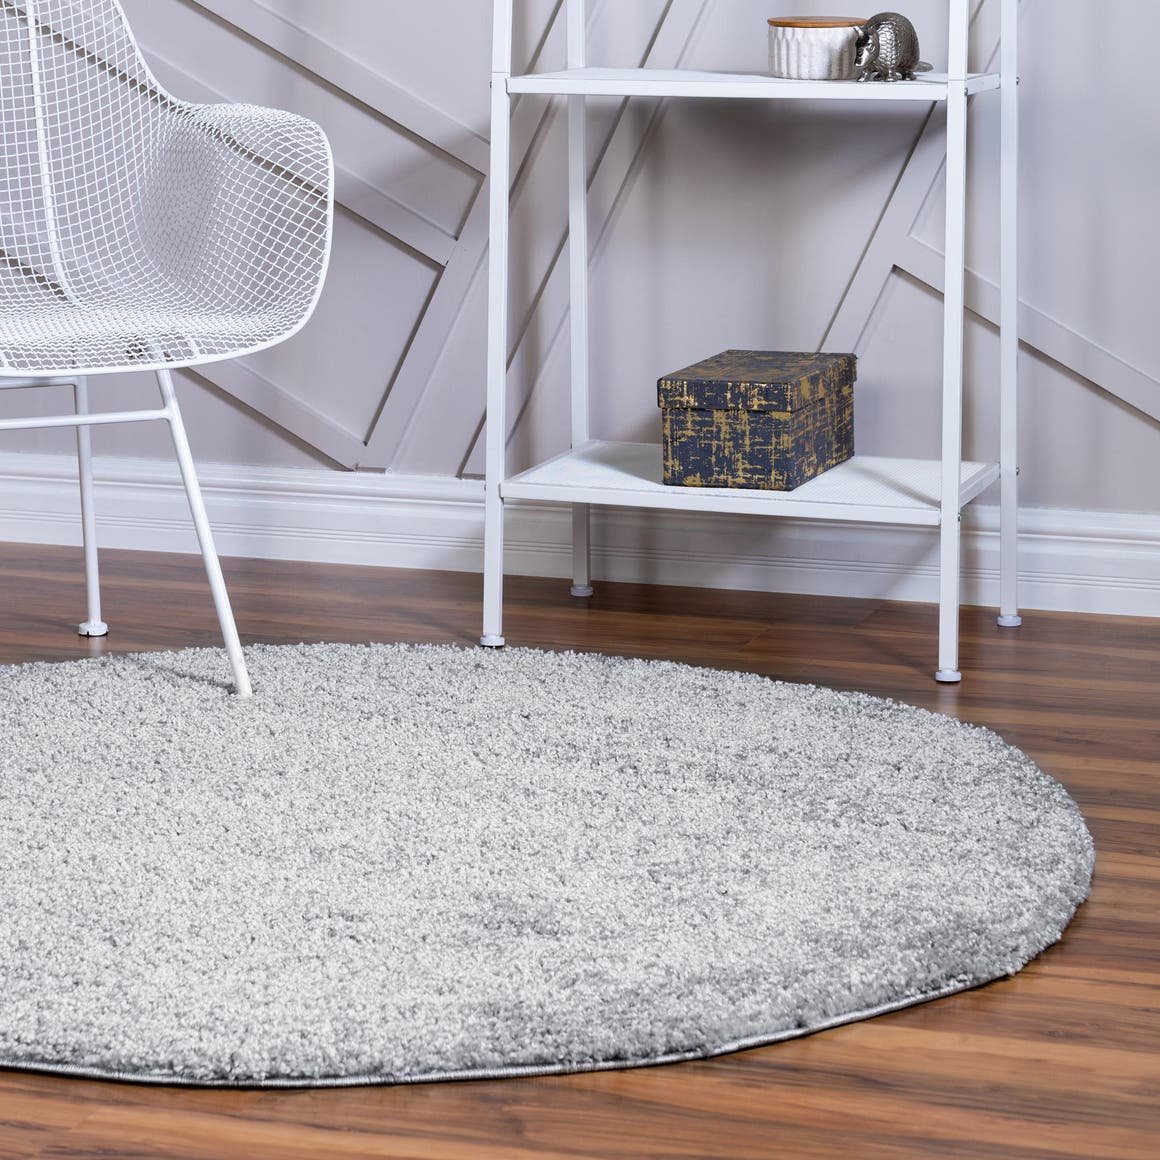 6' x 6' Soft Solid Shag Round Rug main image